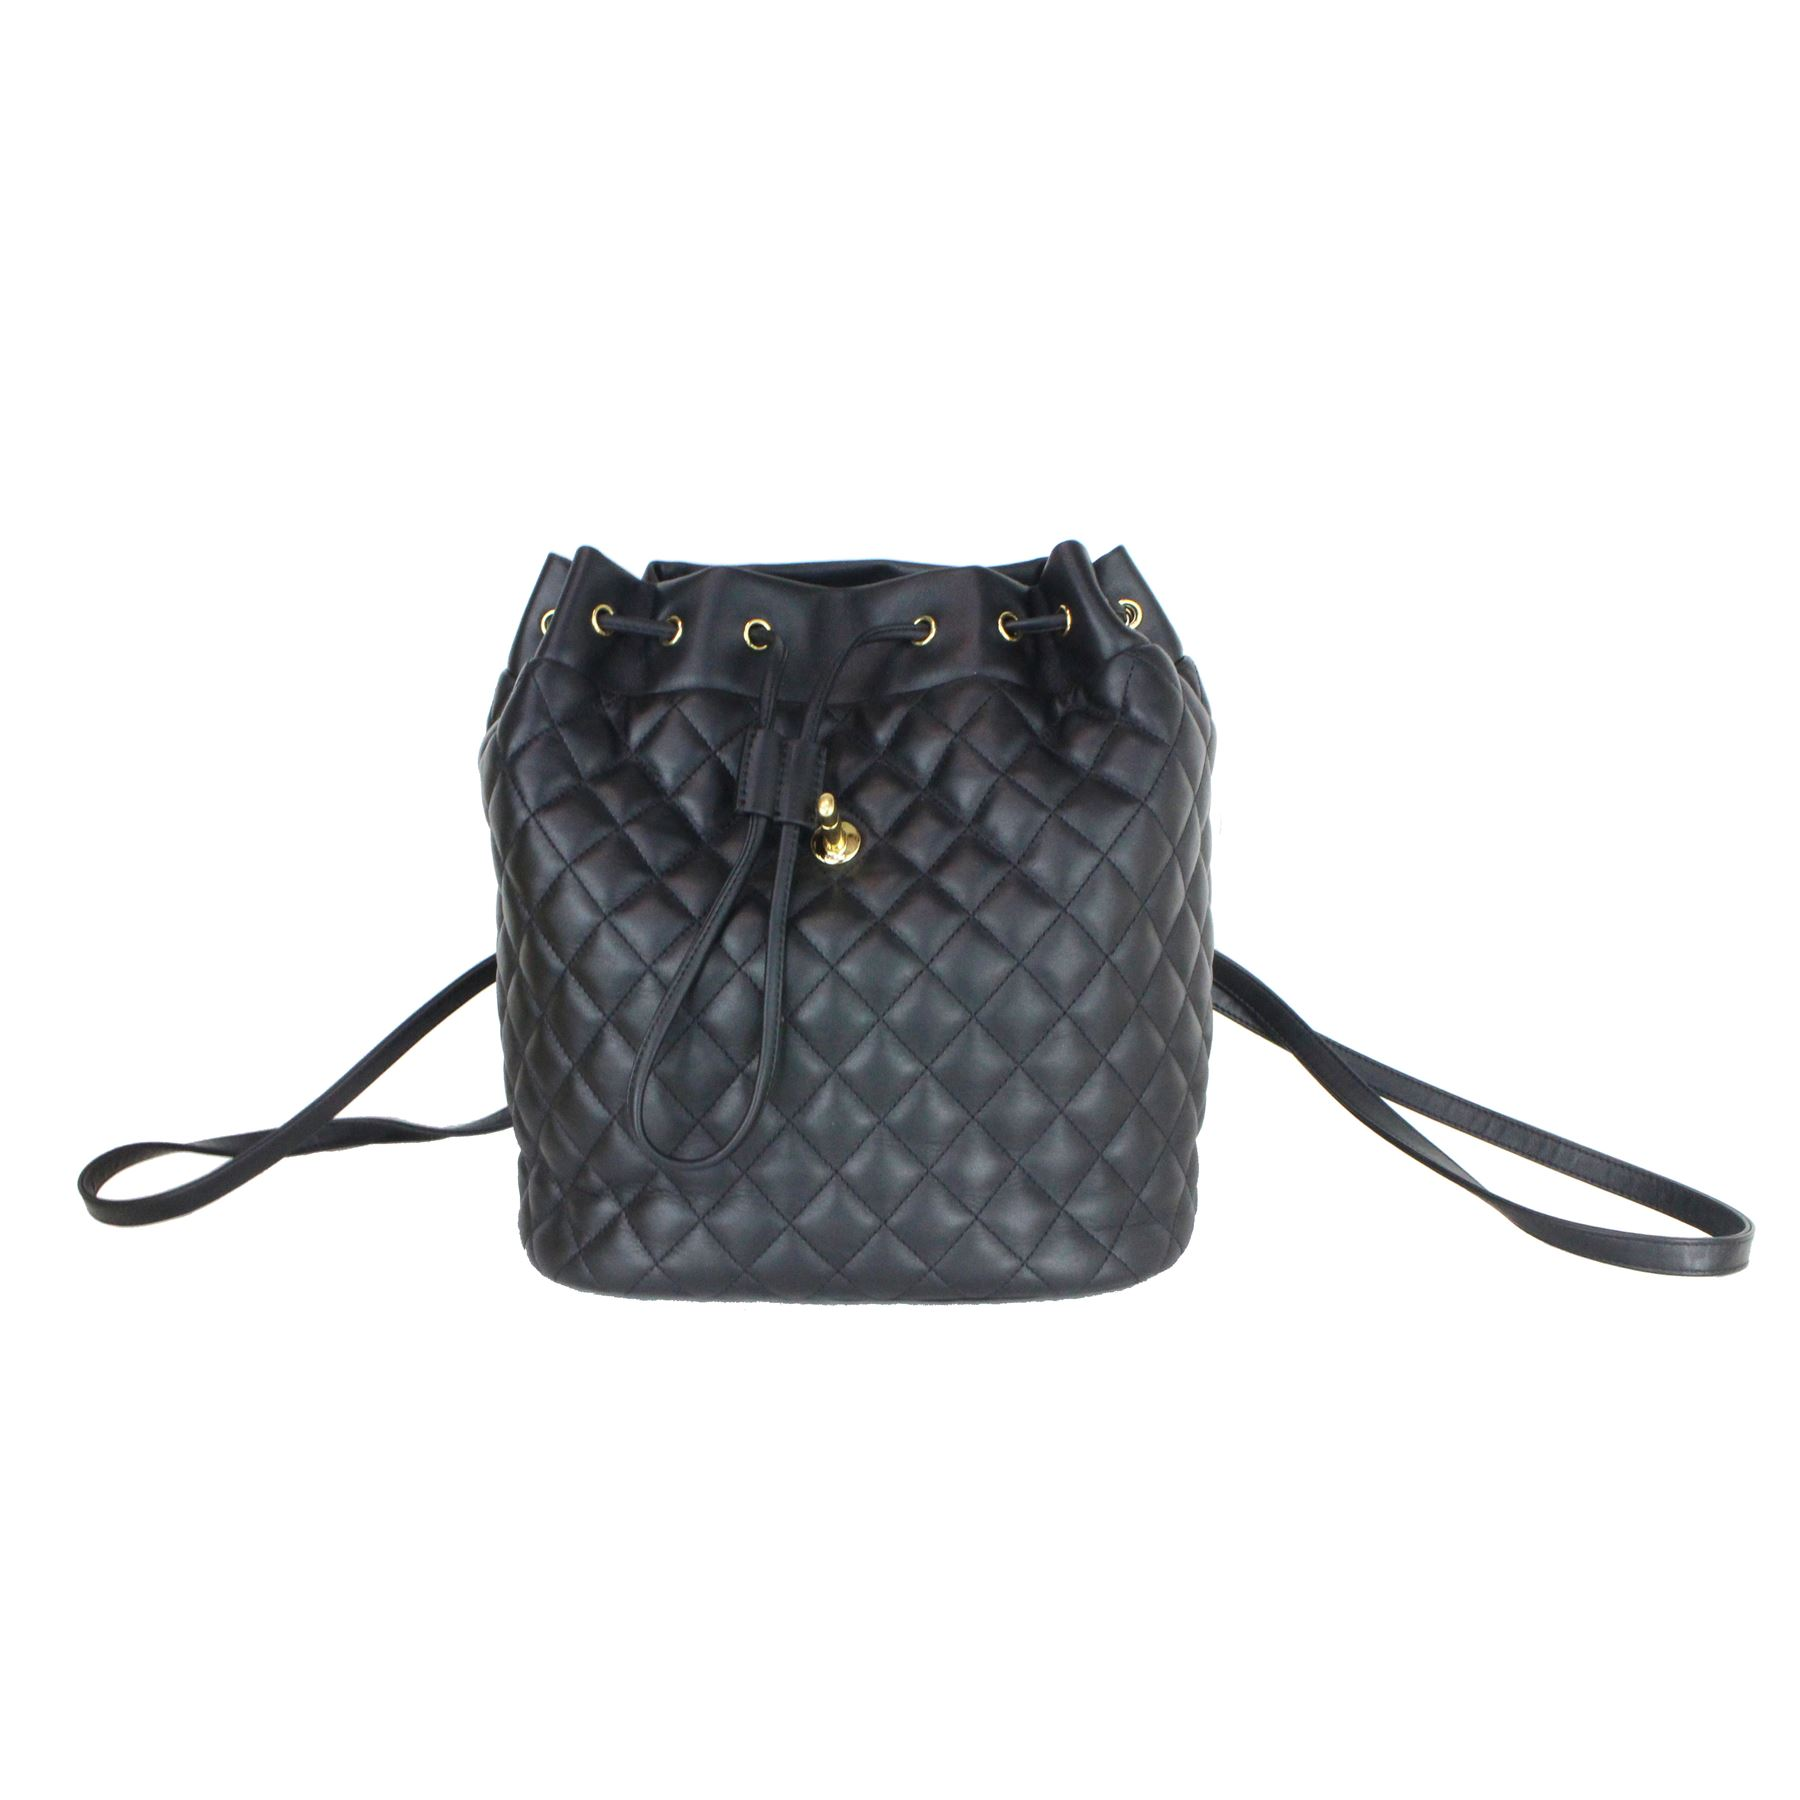 f1311e10561d ... Image 5 : CHANEL BACKPACK URBAN SPIRIT BLACK LAMBSKIN LEATHER BACKPACK  ...